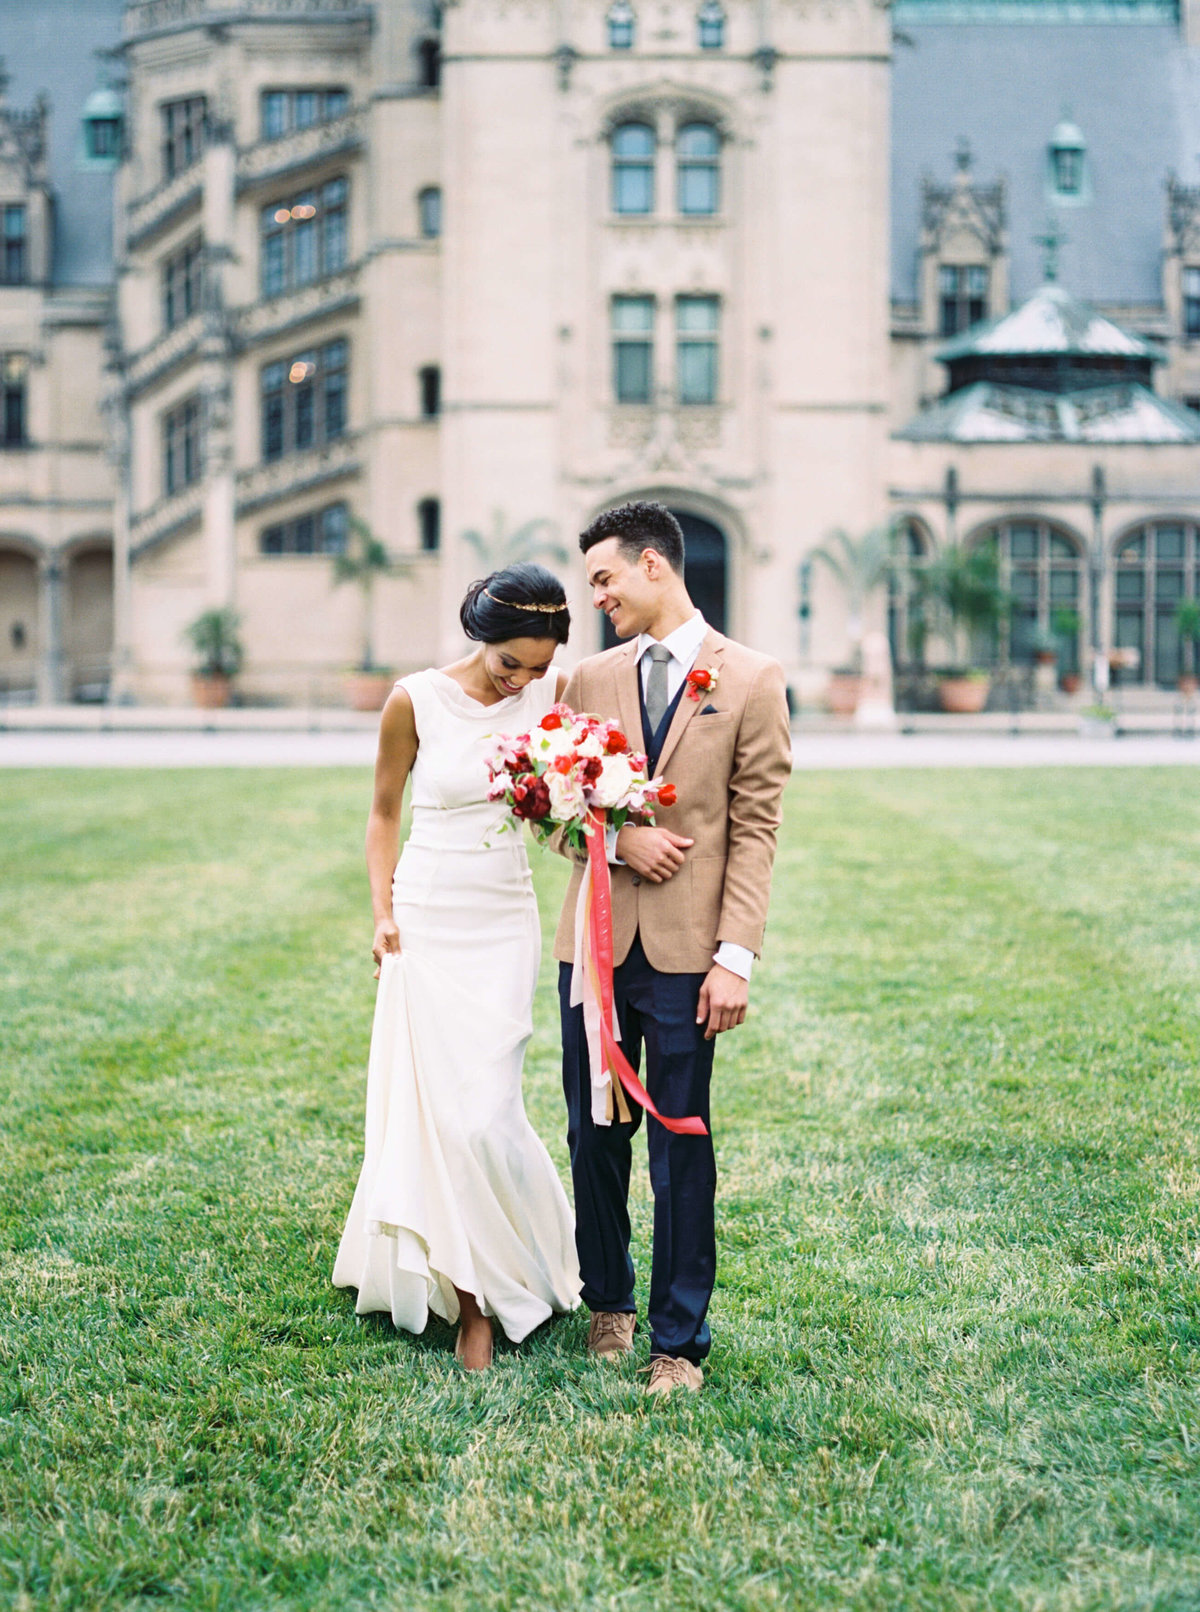 Biltmore Estate wedding photographer, Asheville Wedding Photographer, Henry Photography-44